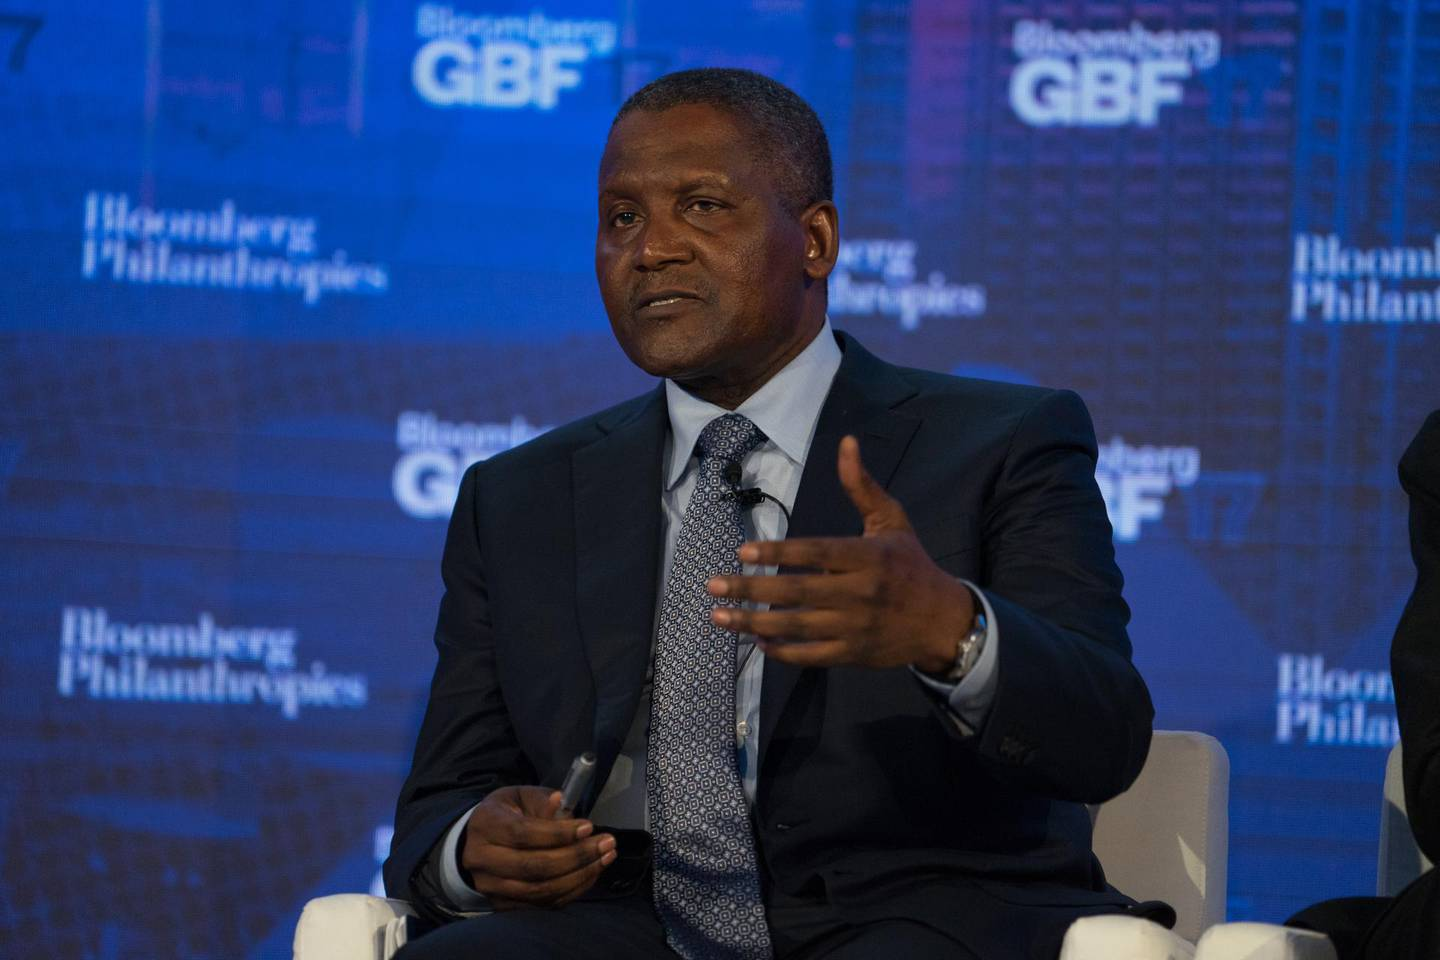 Aliko Dangote, chief executive officer of Dangote Industries Ltd., speaks during the Bloomberg Global Business Forum in New York, U.S., on Wednesday, Sept. 20, 2017. The forum, hosted during UN General Assembly week, brings leaders to work together, through on-the-record mainstage discussions and private bilateral and multilateral meetings, to address the most pressing economic issues facing us today. Photographer: Misha Friedman/Bloomberg